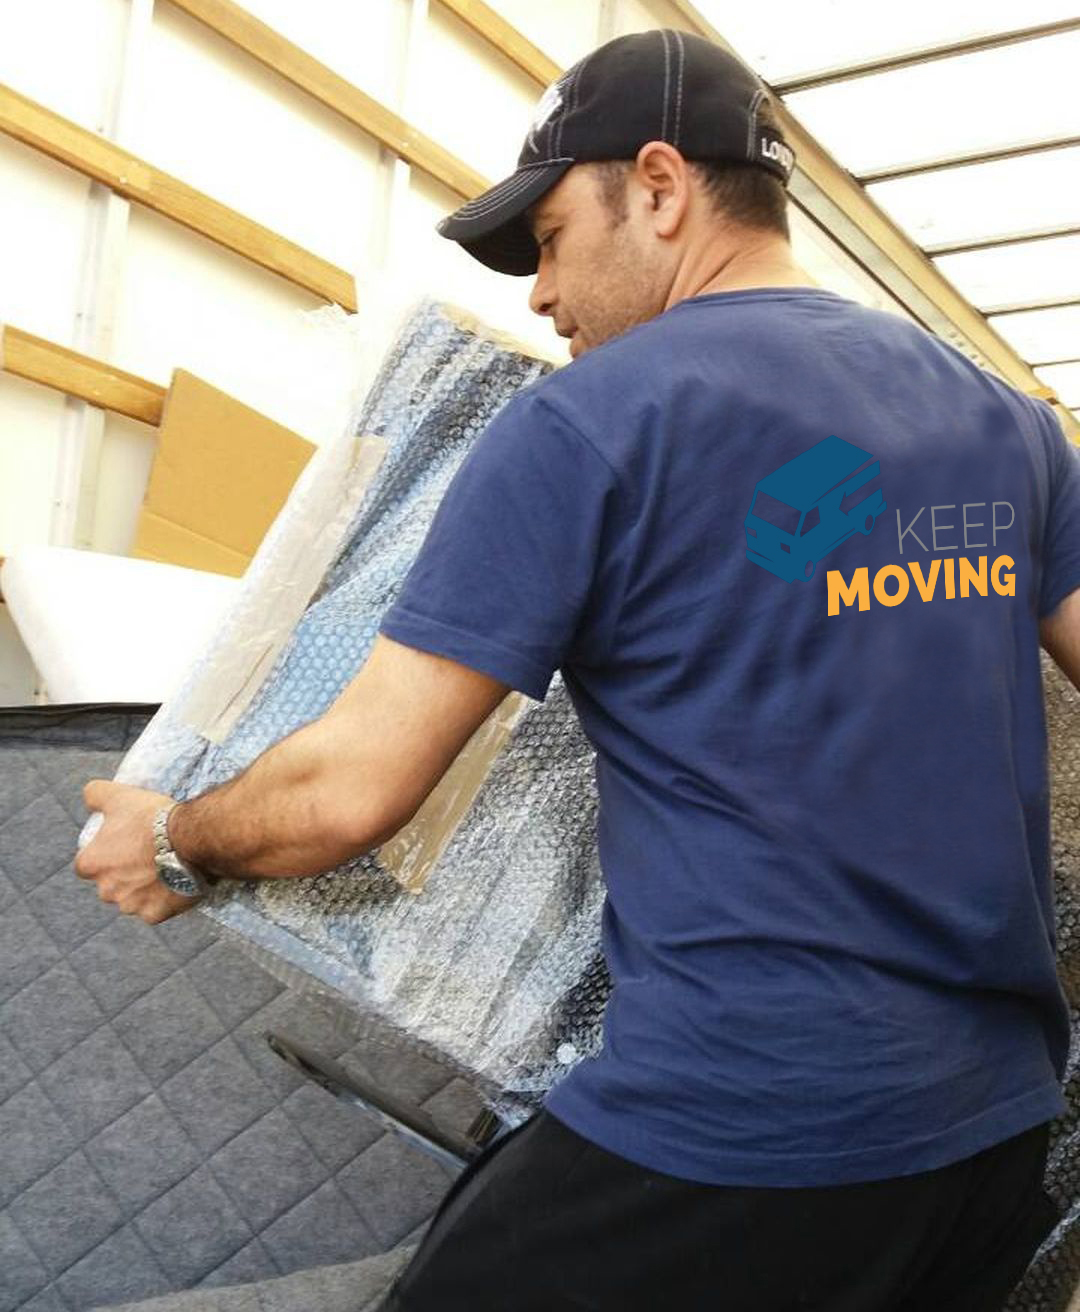 E4 moving service South Chingford